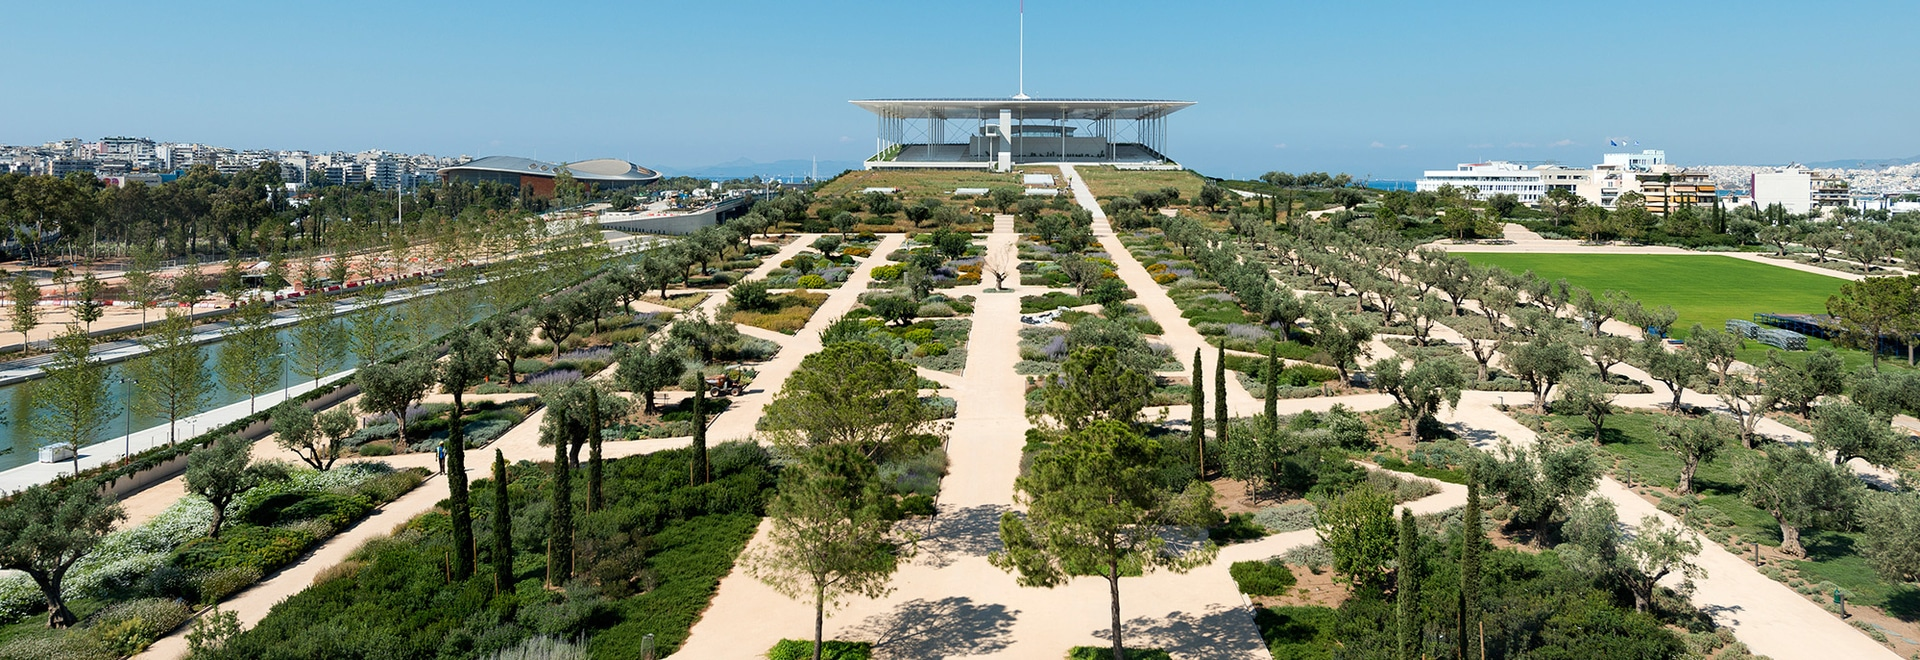 The new Stavos Niarchos Foundation Cultural Center with National Opera and National Library is embedded in a giant mediterranean parkland. © SNFCC / Yiorgis Yerolymbos